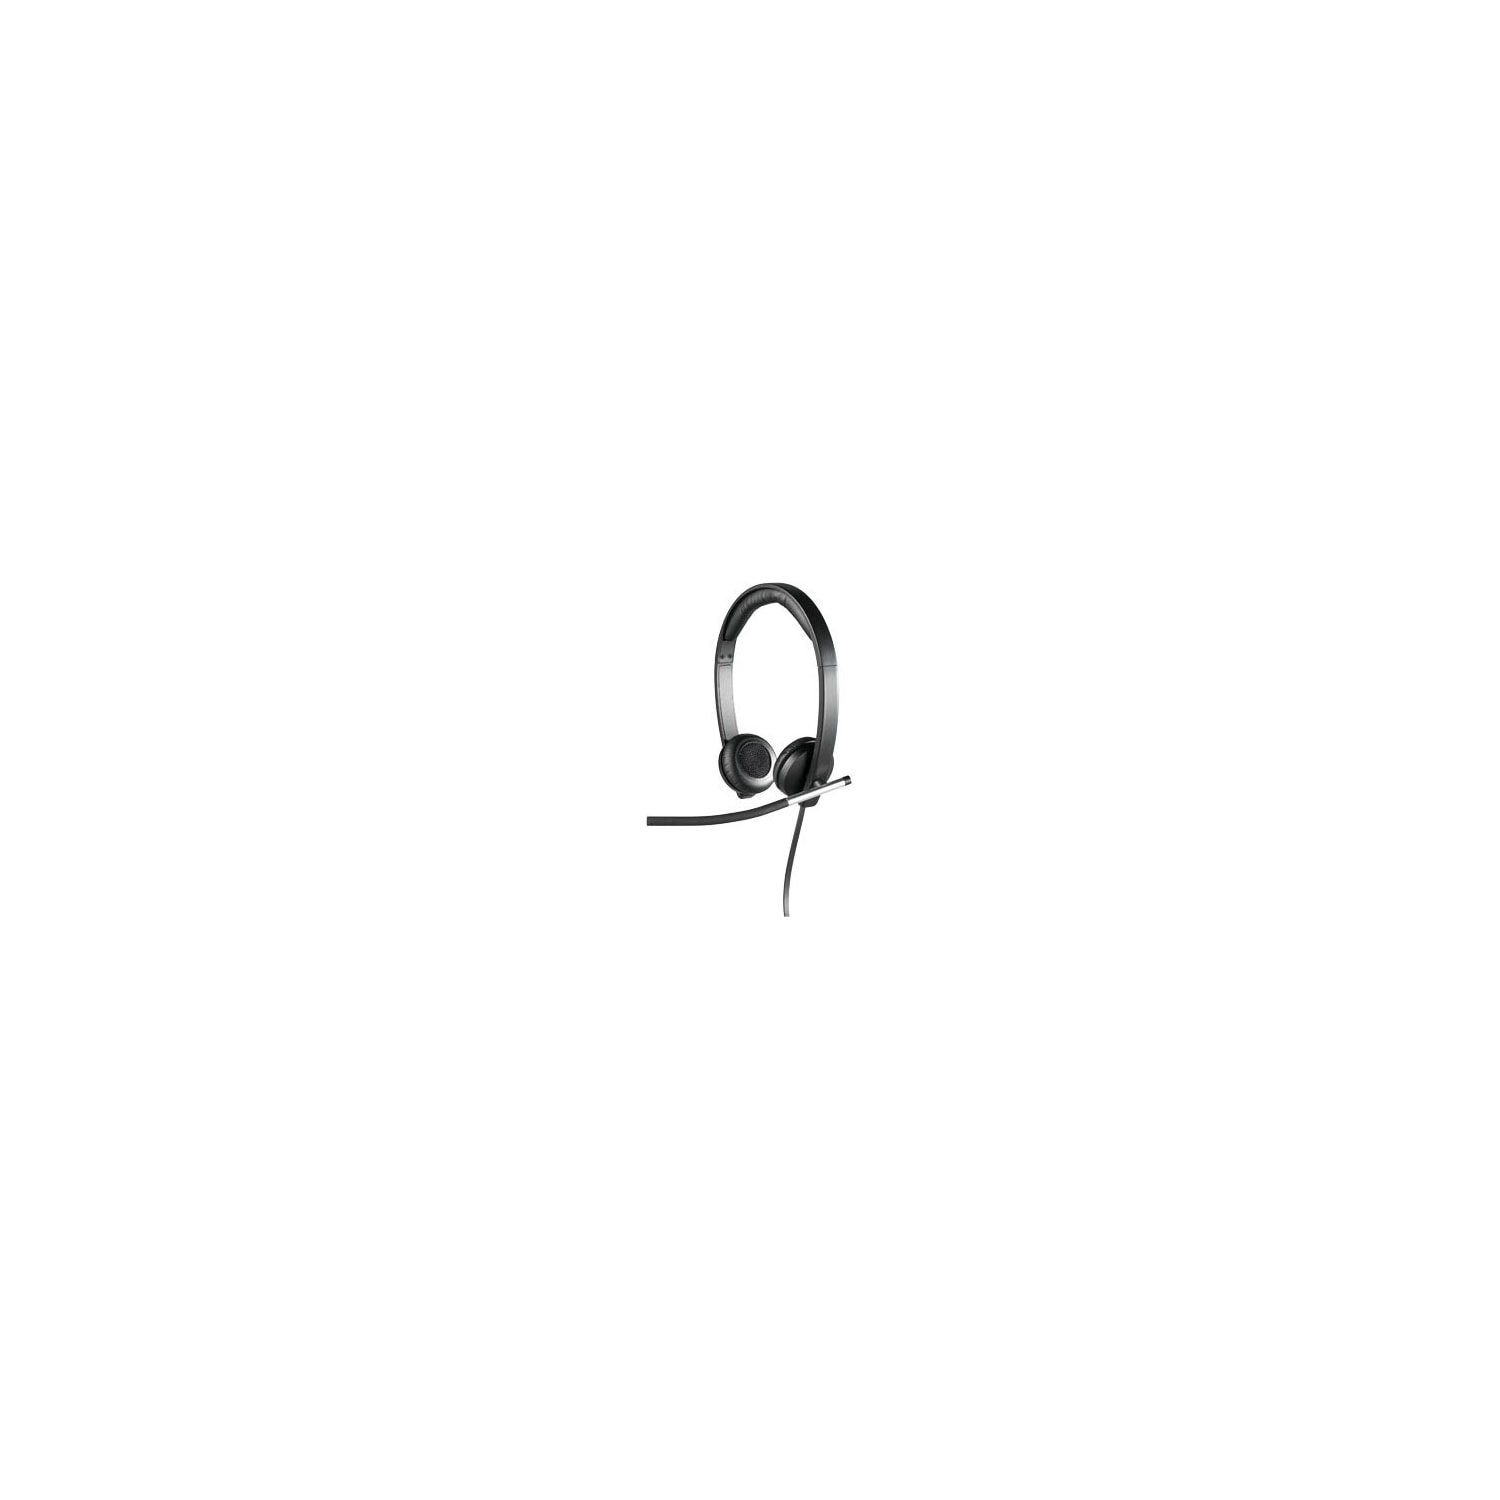 84947bd8892 Buy Logitech H650e Wired Mono Headset - Over-the-head - Supra-aural ...